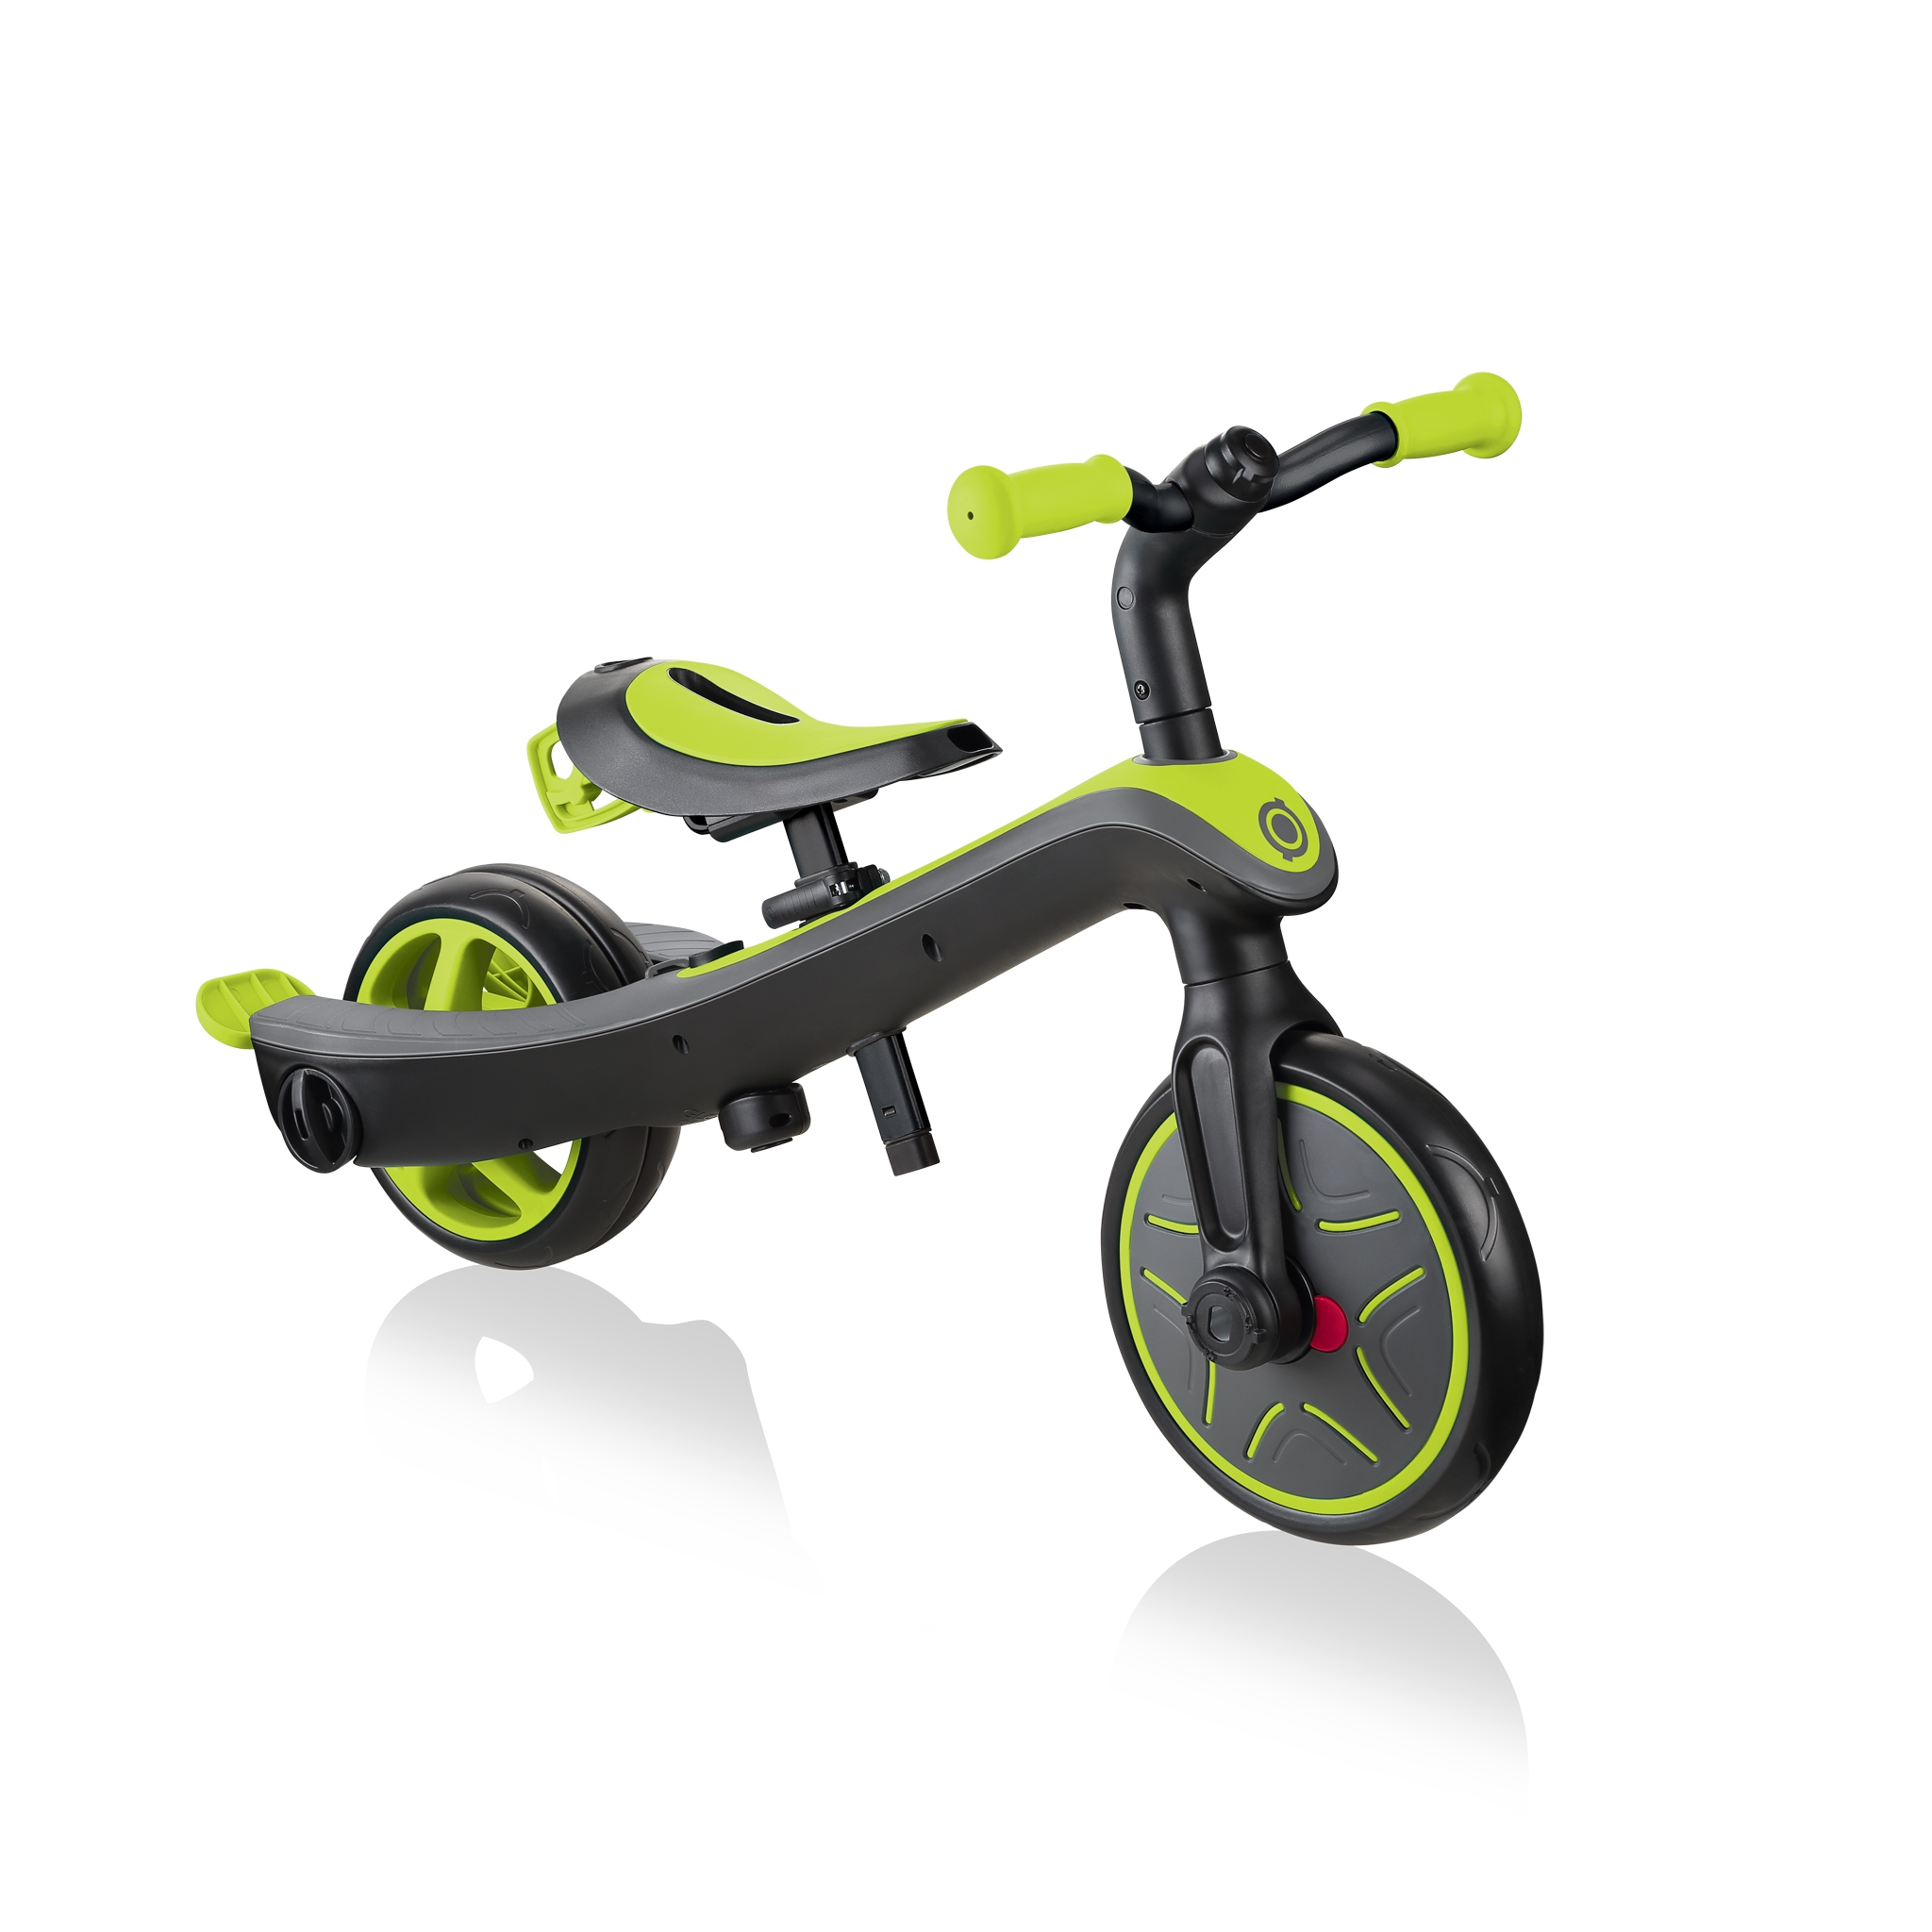 Globber-EXPLORER-TRIKE-4in1-all-in-one-baby-tricycle-and-kids-balance-bike-stage4-balance-bike_lime-green